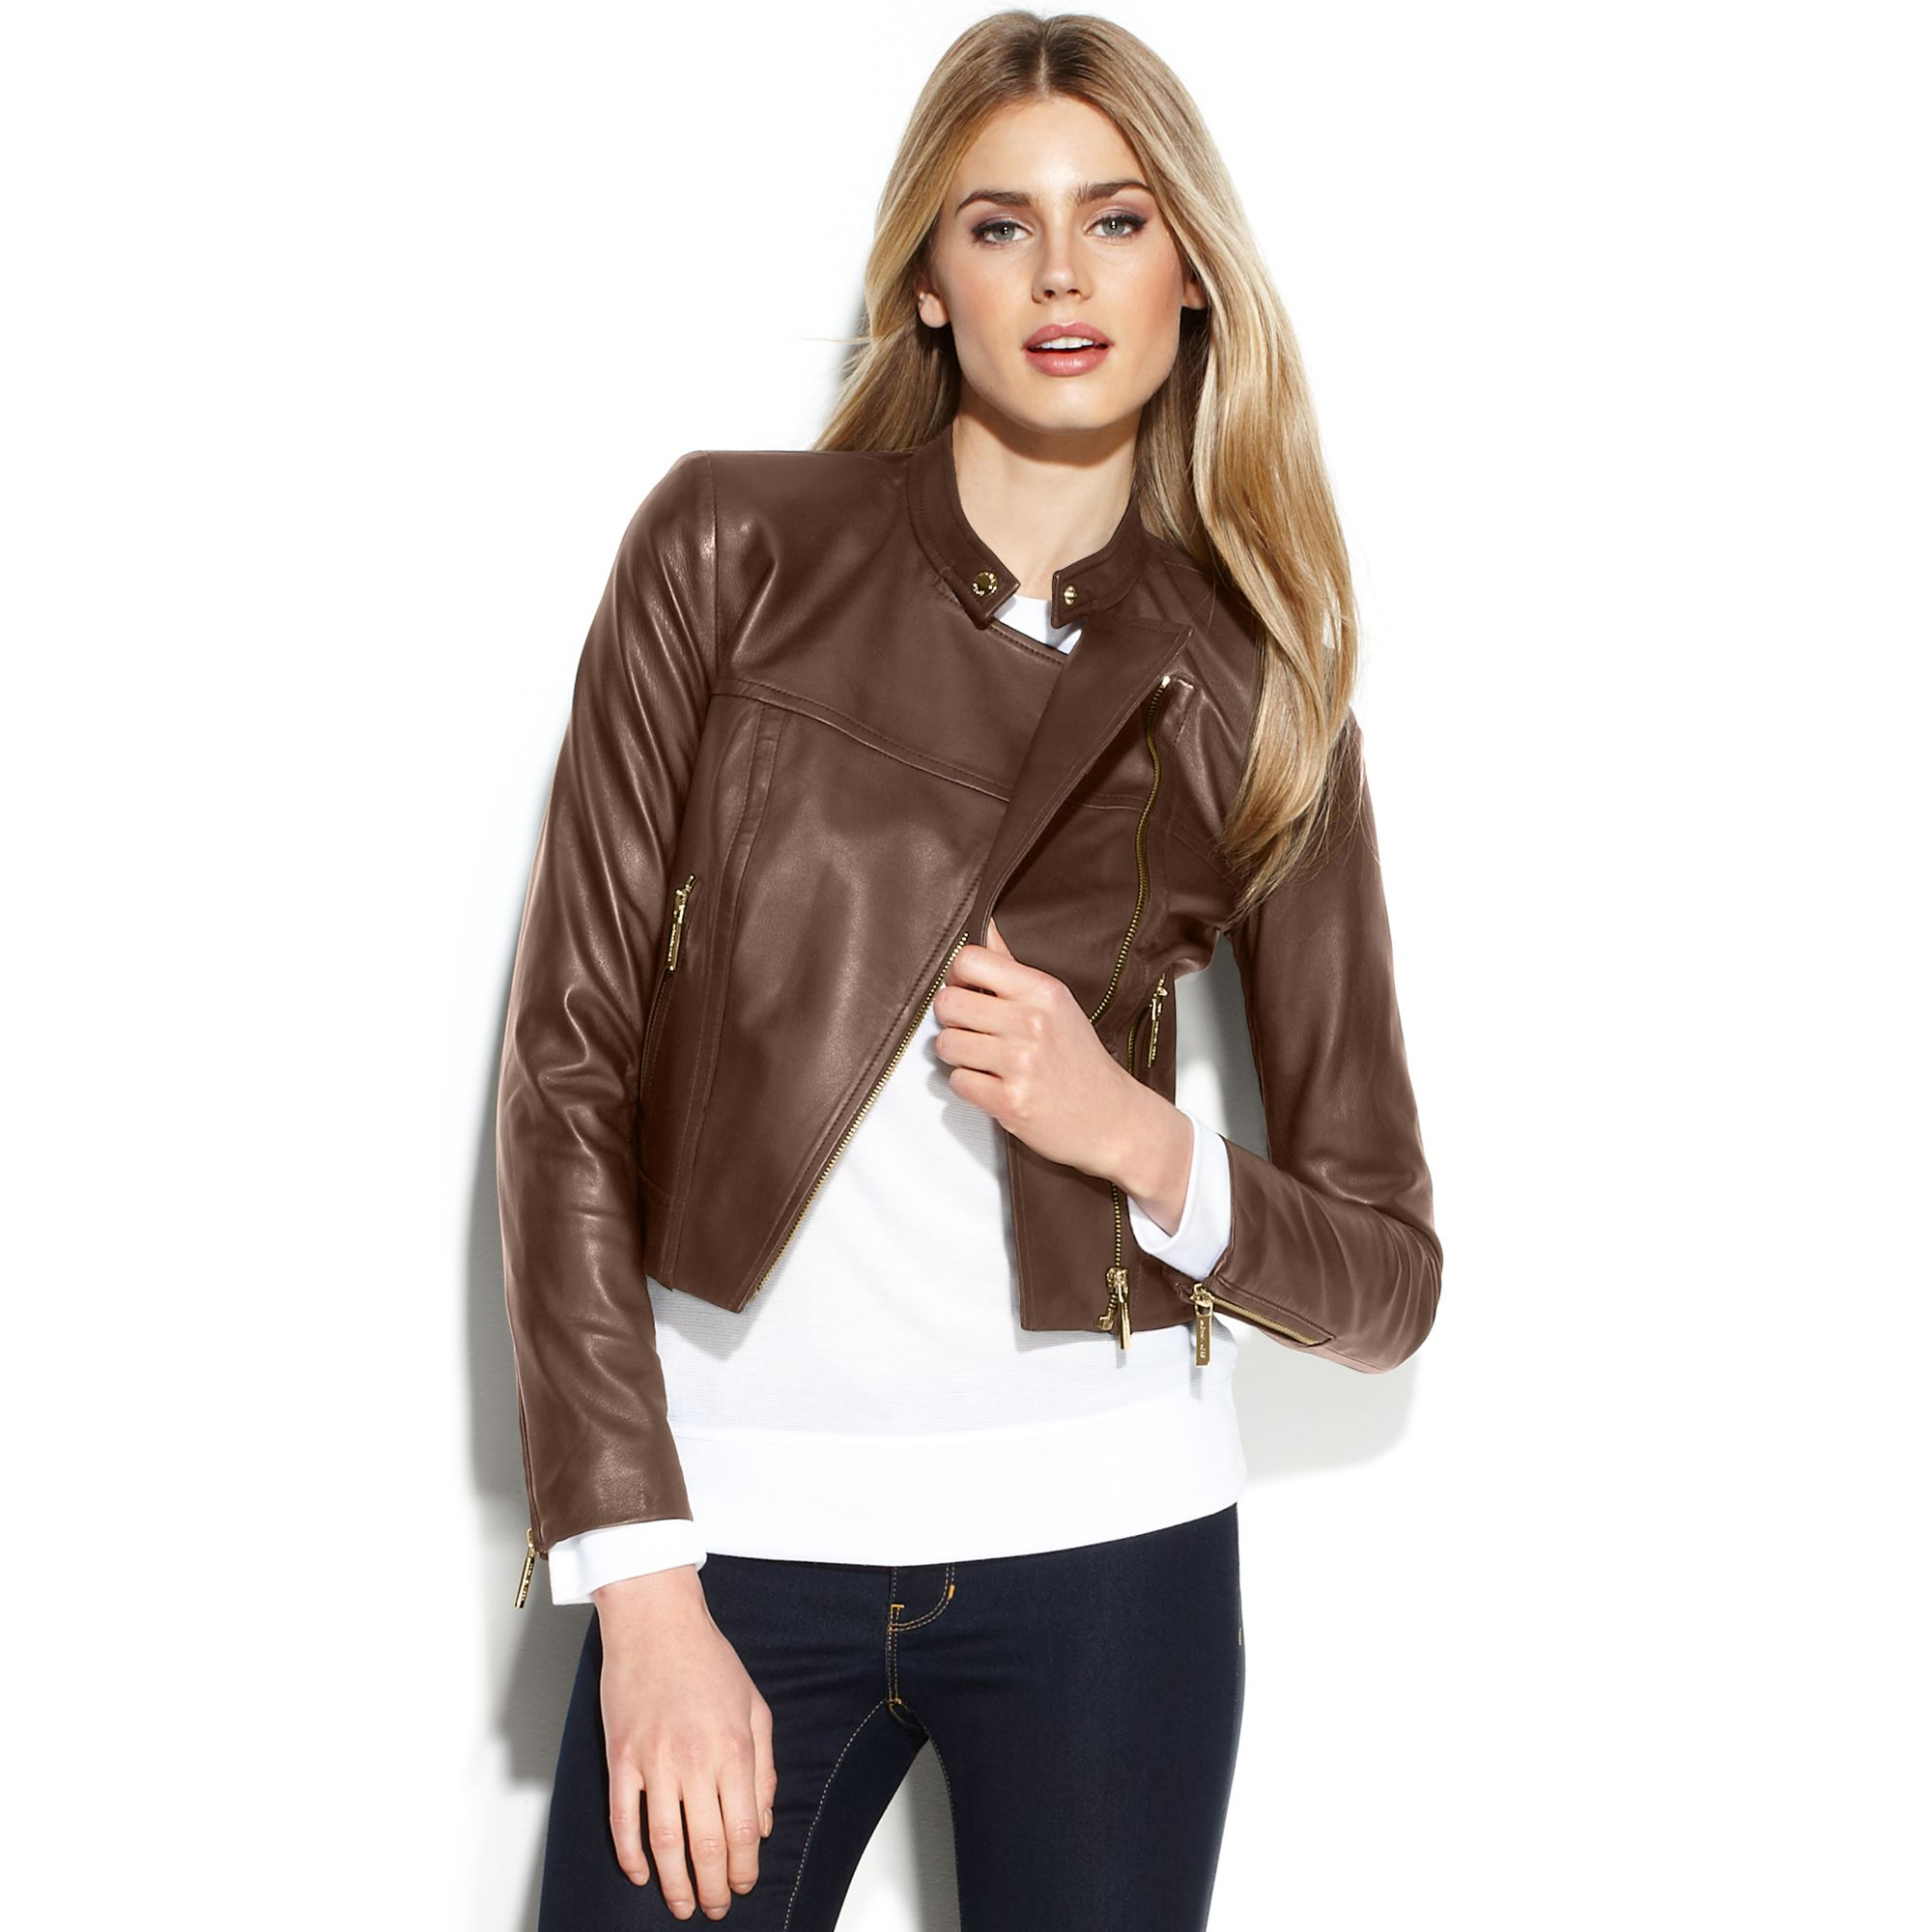 Lyst - Michael Kors Cropped Leather Moto Jacket in Brown